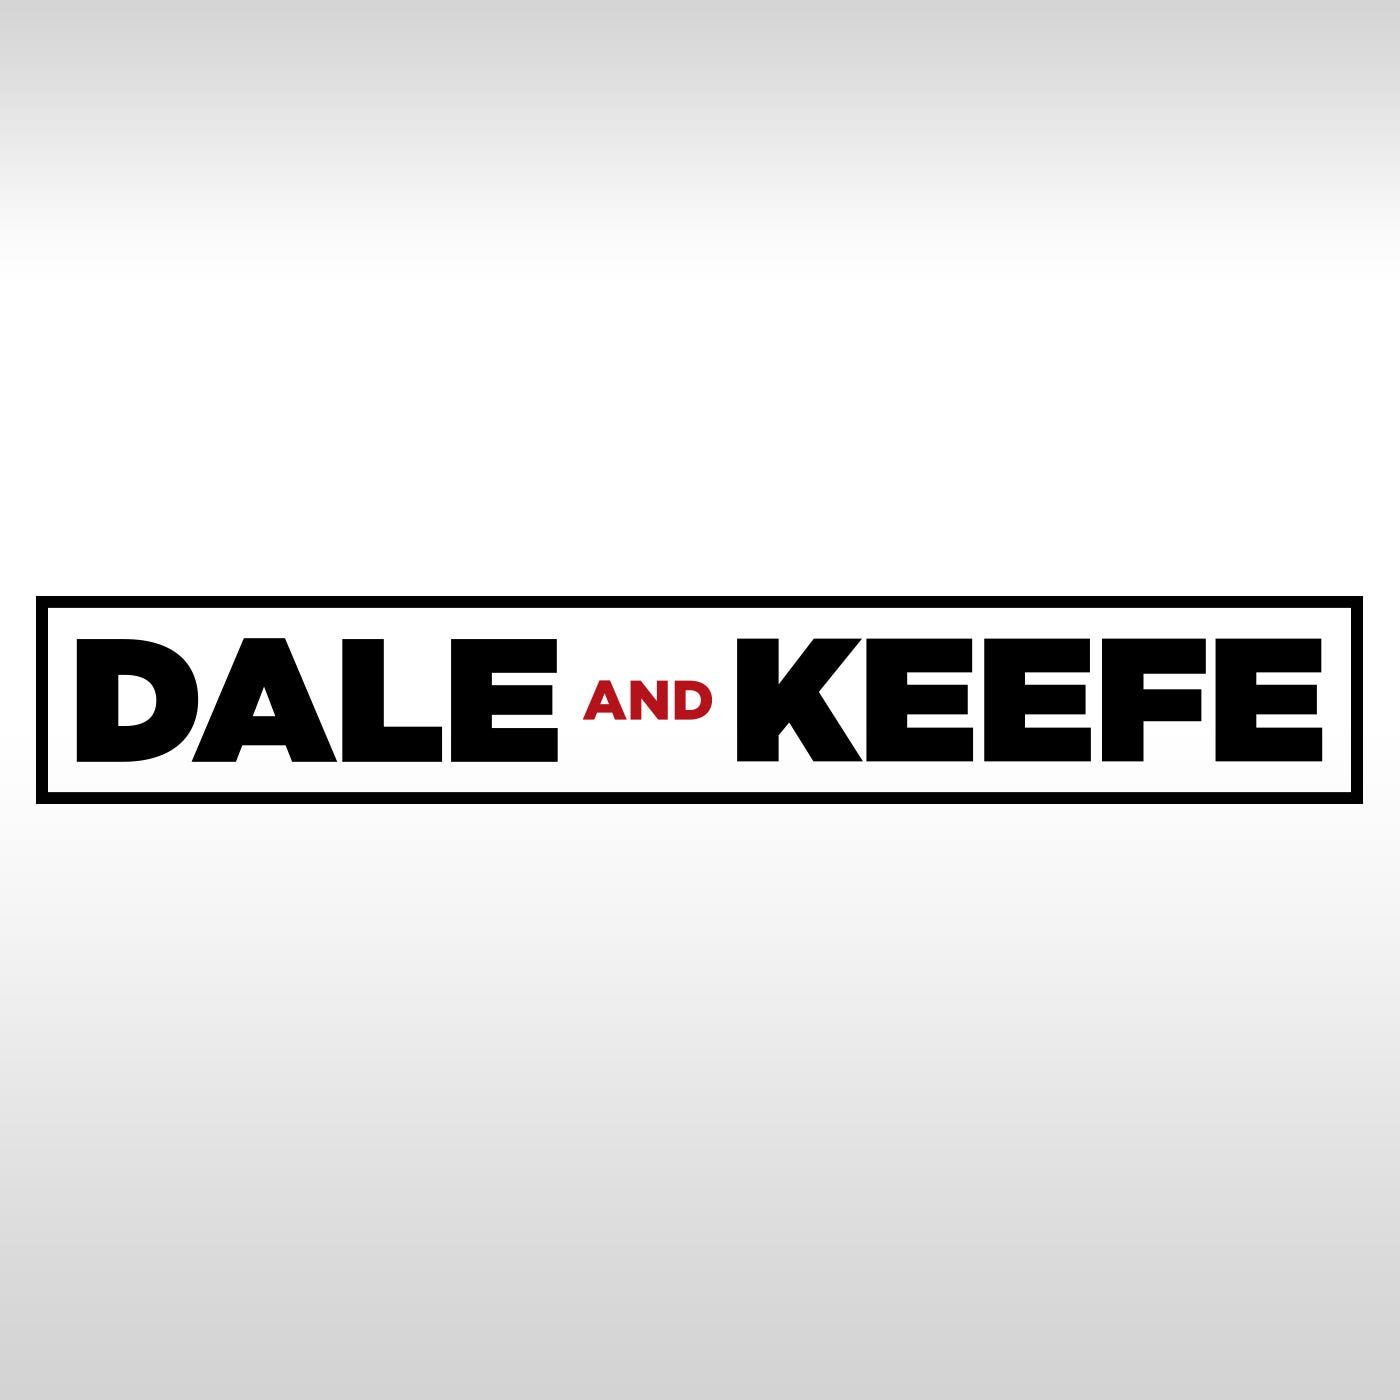 Dale & Keefe - Michael McCann explains just how serious the charges